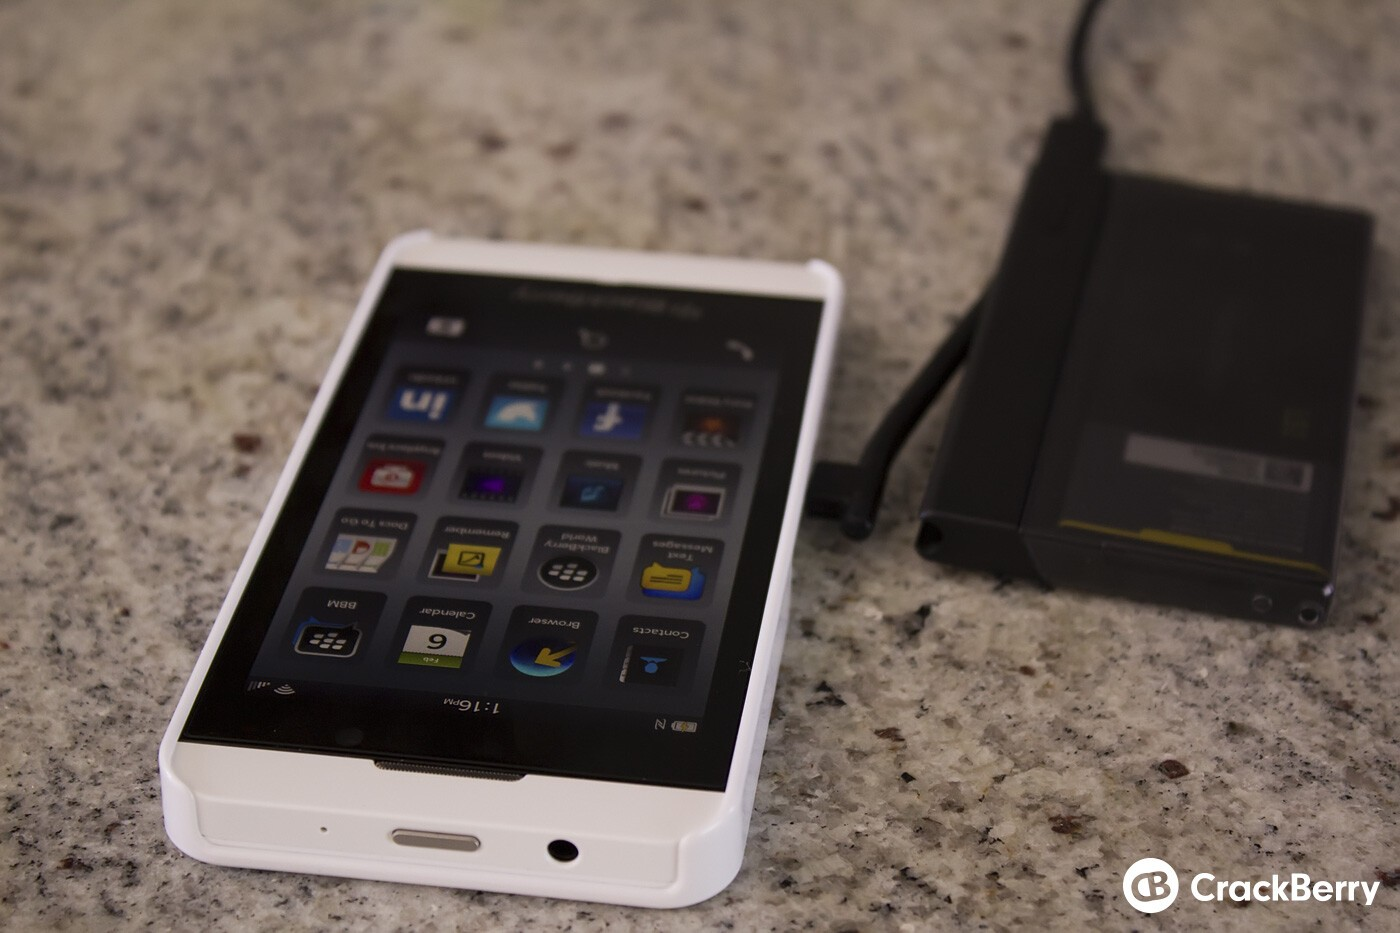 Charging the Z10 and the external spare battery at the same time